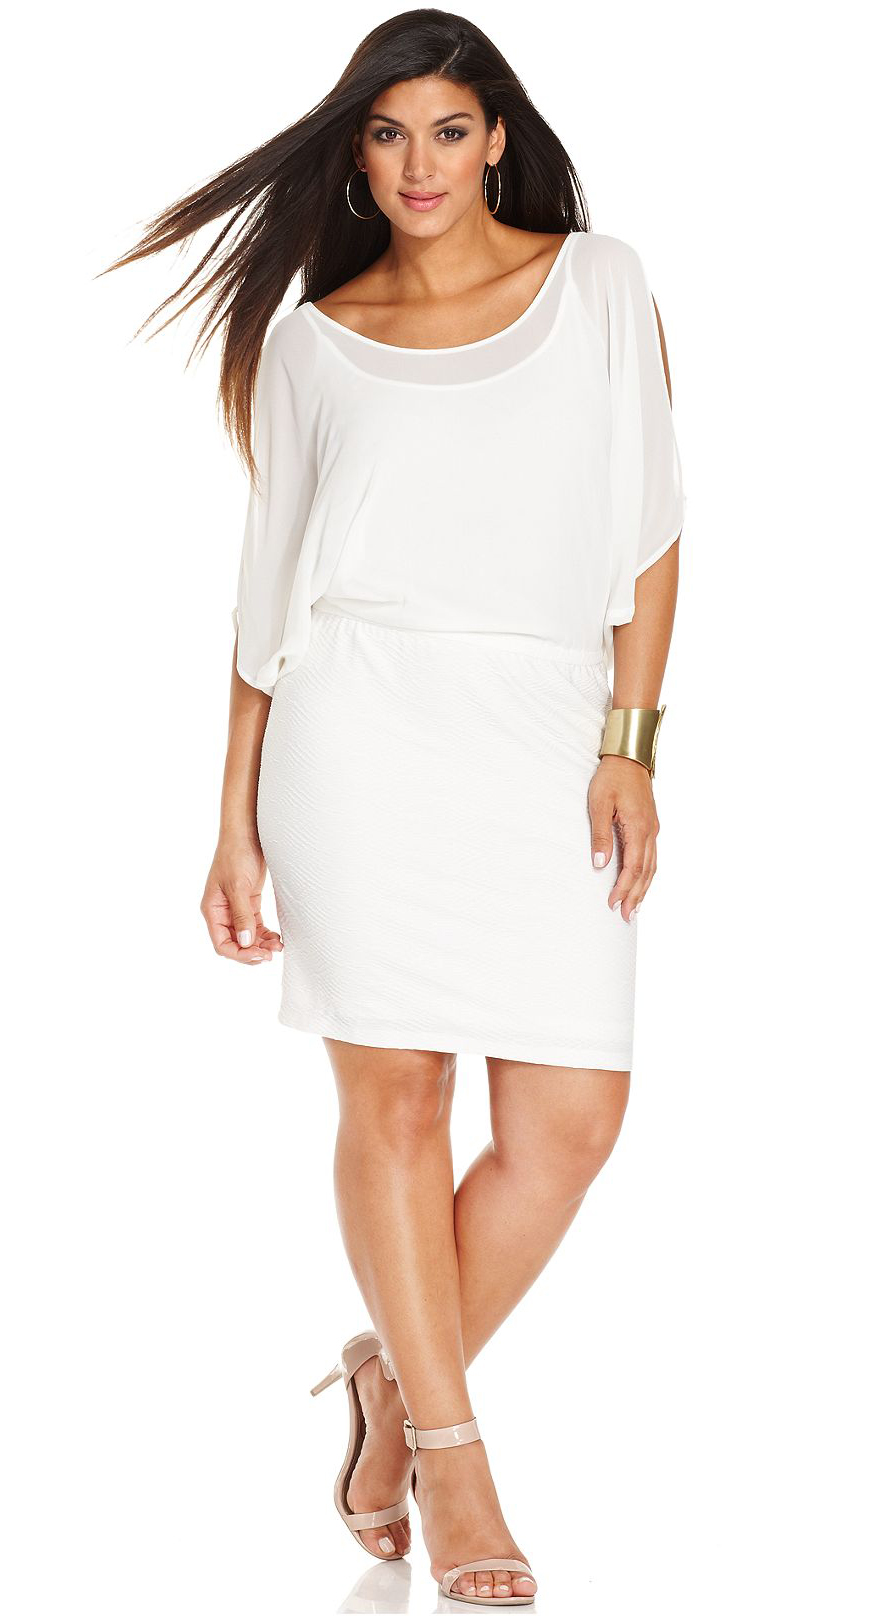 Plus Size White Dresses Macy | Shopping Guide. We Are ...